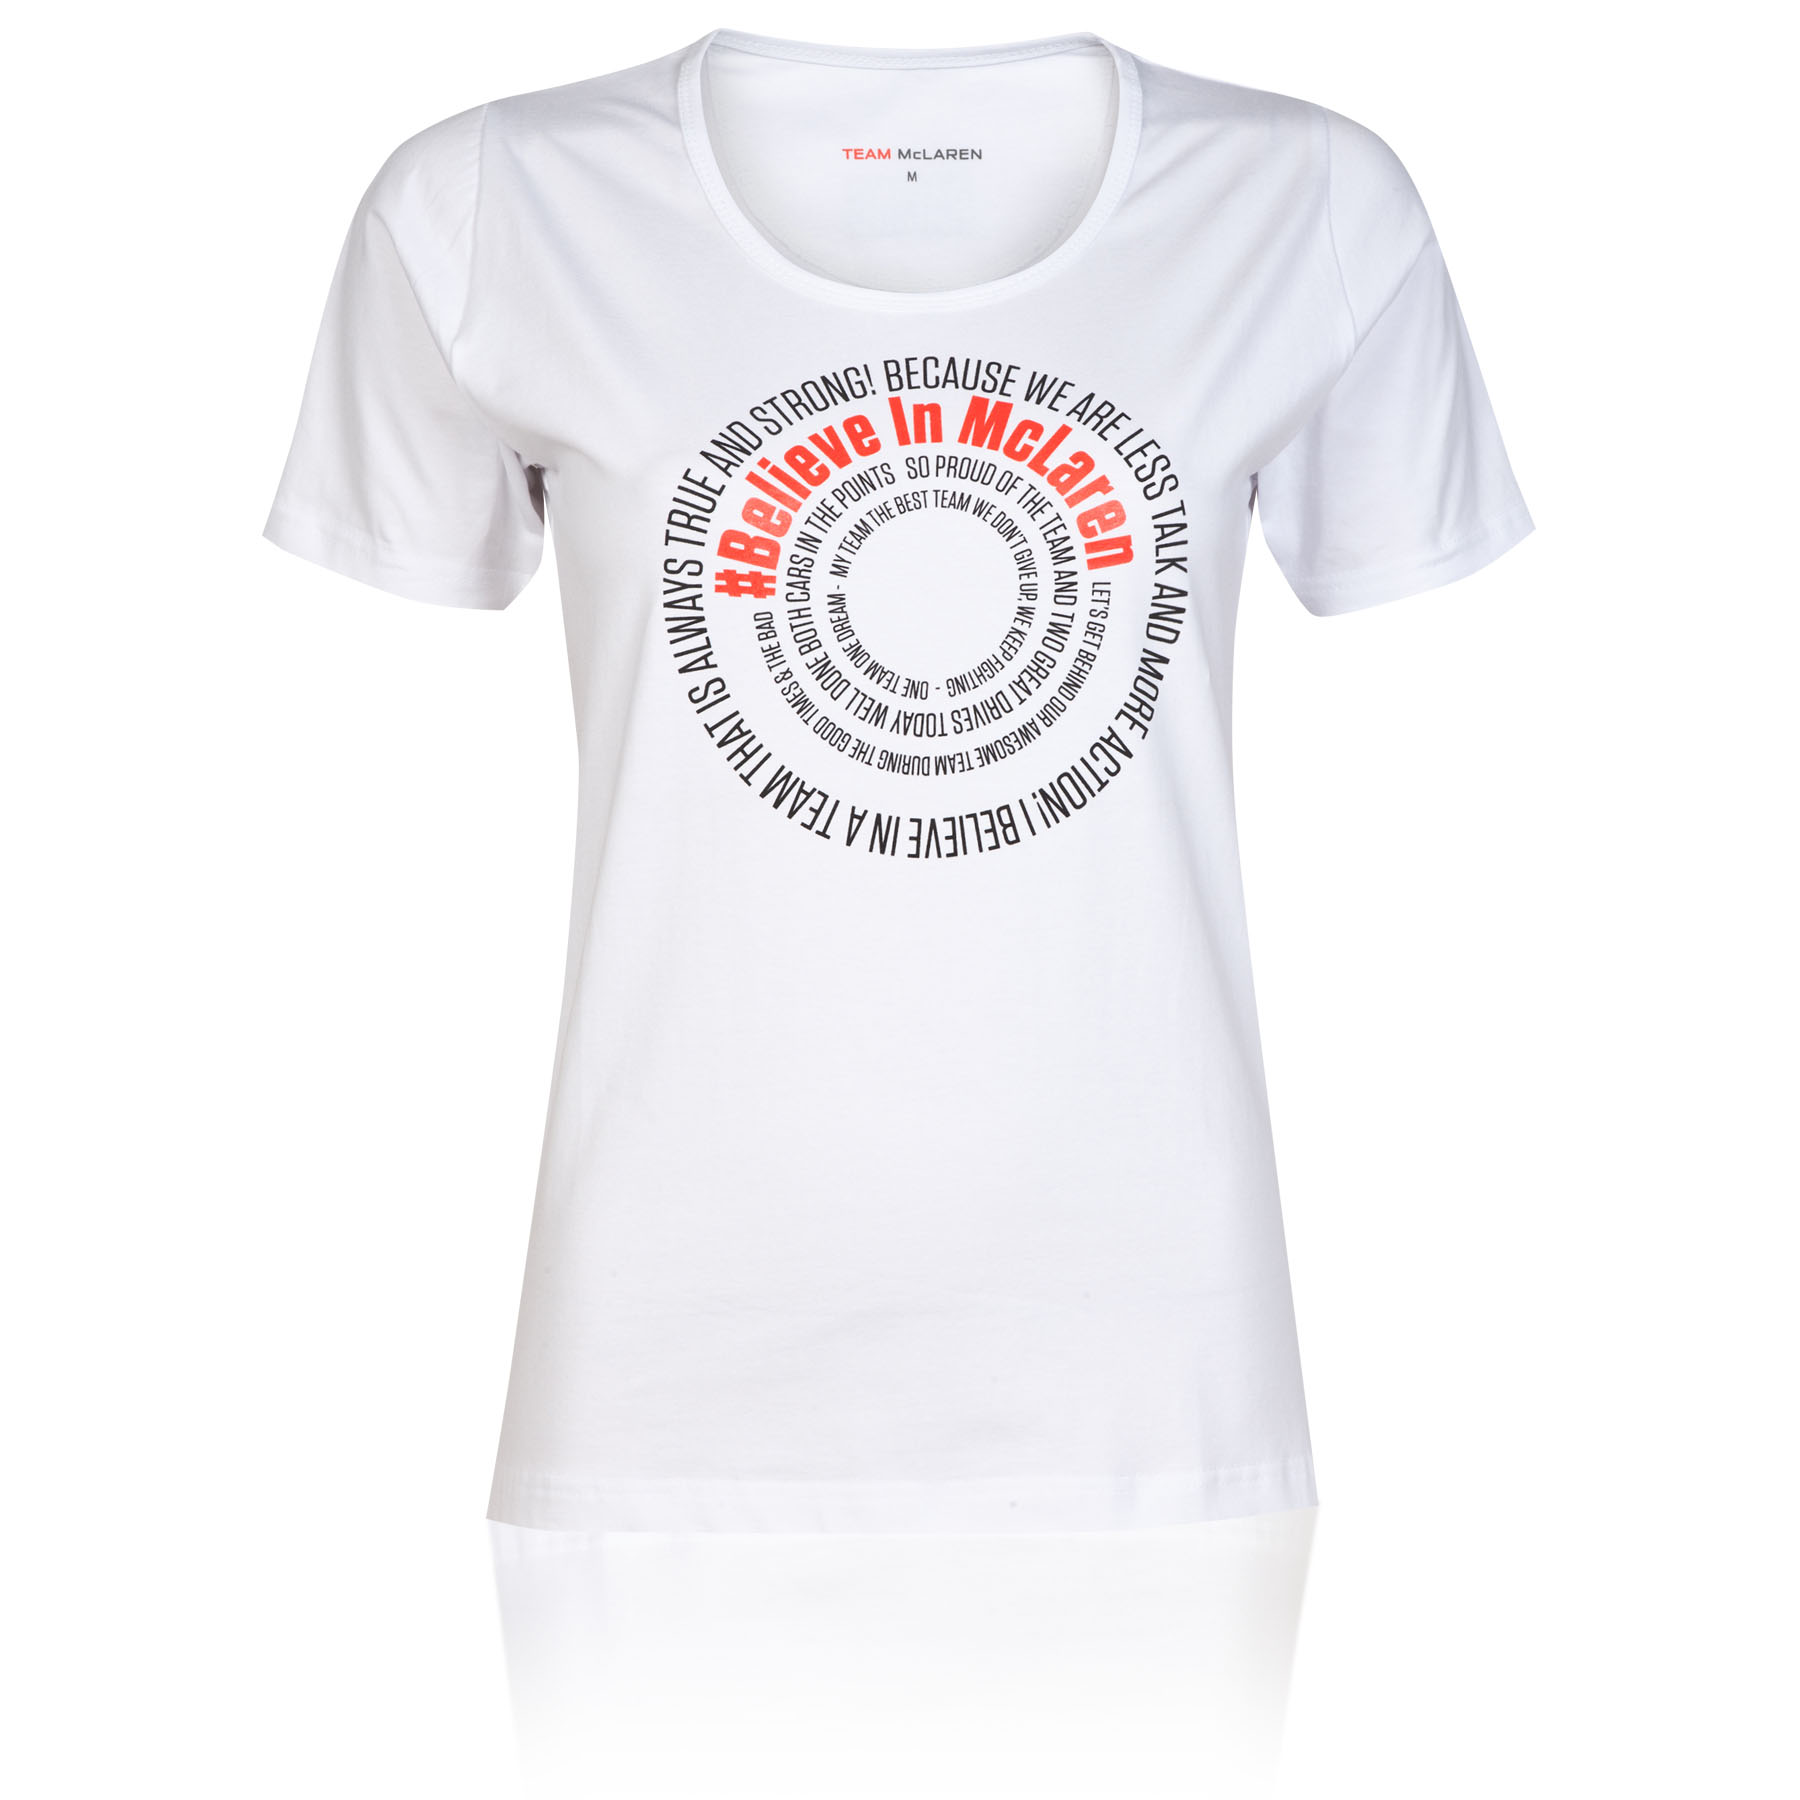 McLaren Mercedes Tweet T-Shirt - Womens